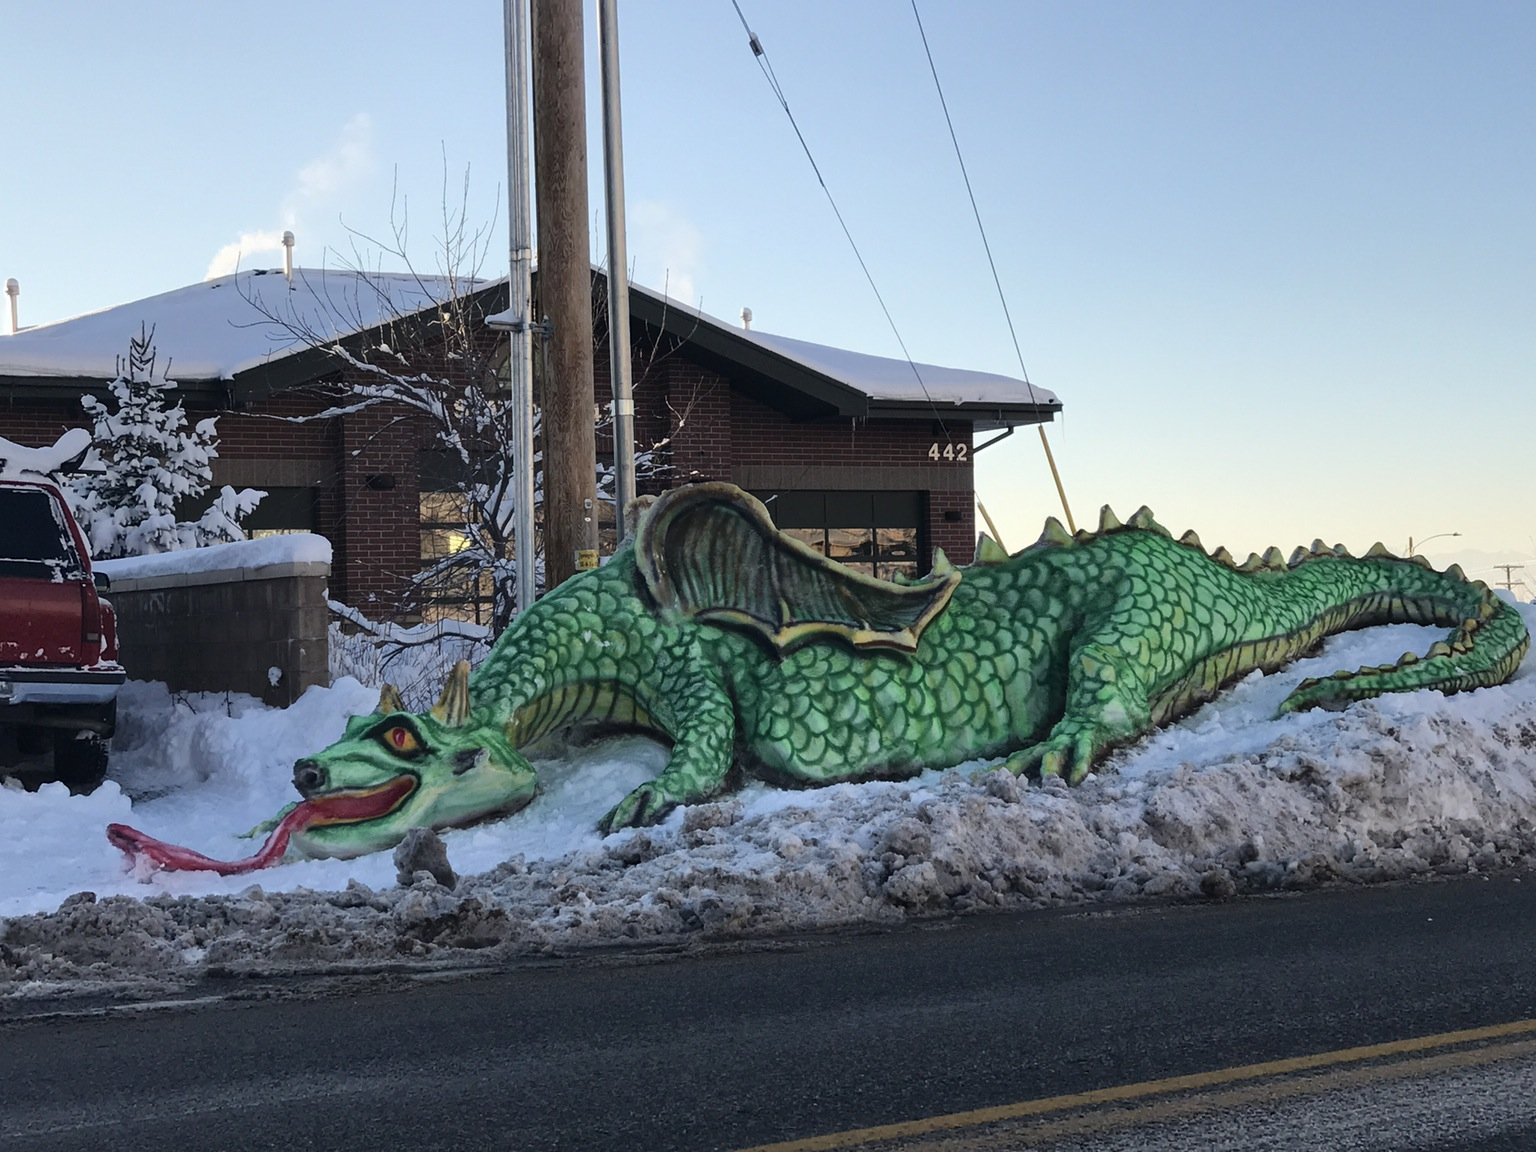 The small town where I commute for work has a guy who builds snow sculptures for all to enjoy as they drive past. He really outdid himself with this most recent storm.